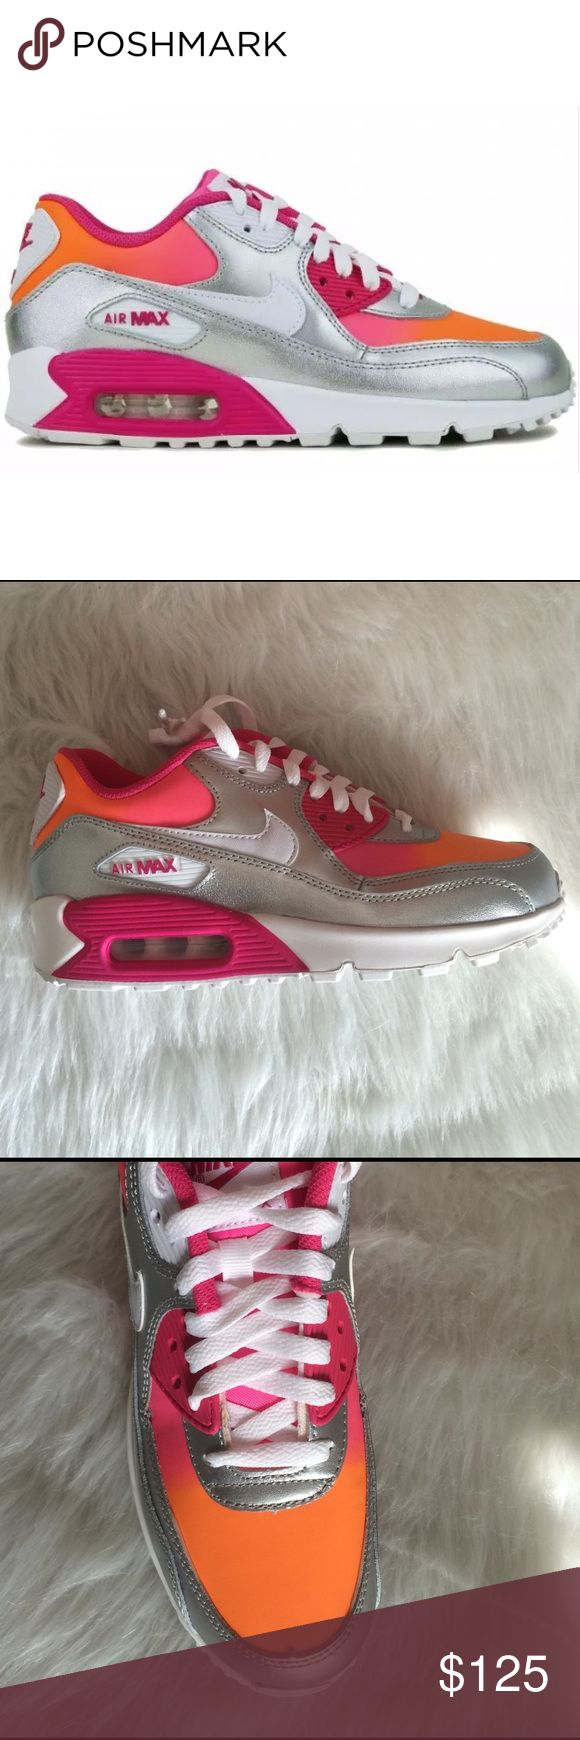 NIKE AIR MAX 90 PREMIUM LTR SHOES Shoes are a size 6 youth which equals to WOMENS 7.5. I added sizing chart for better understanding. No box Nike Shoes Sneakers